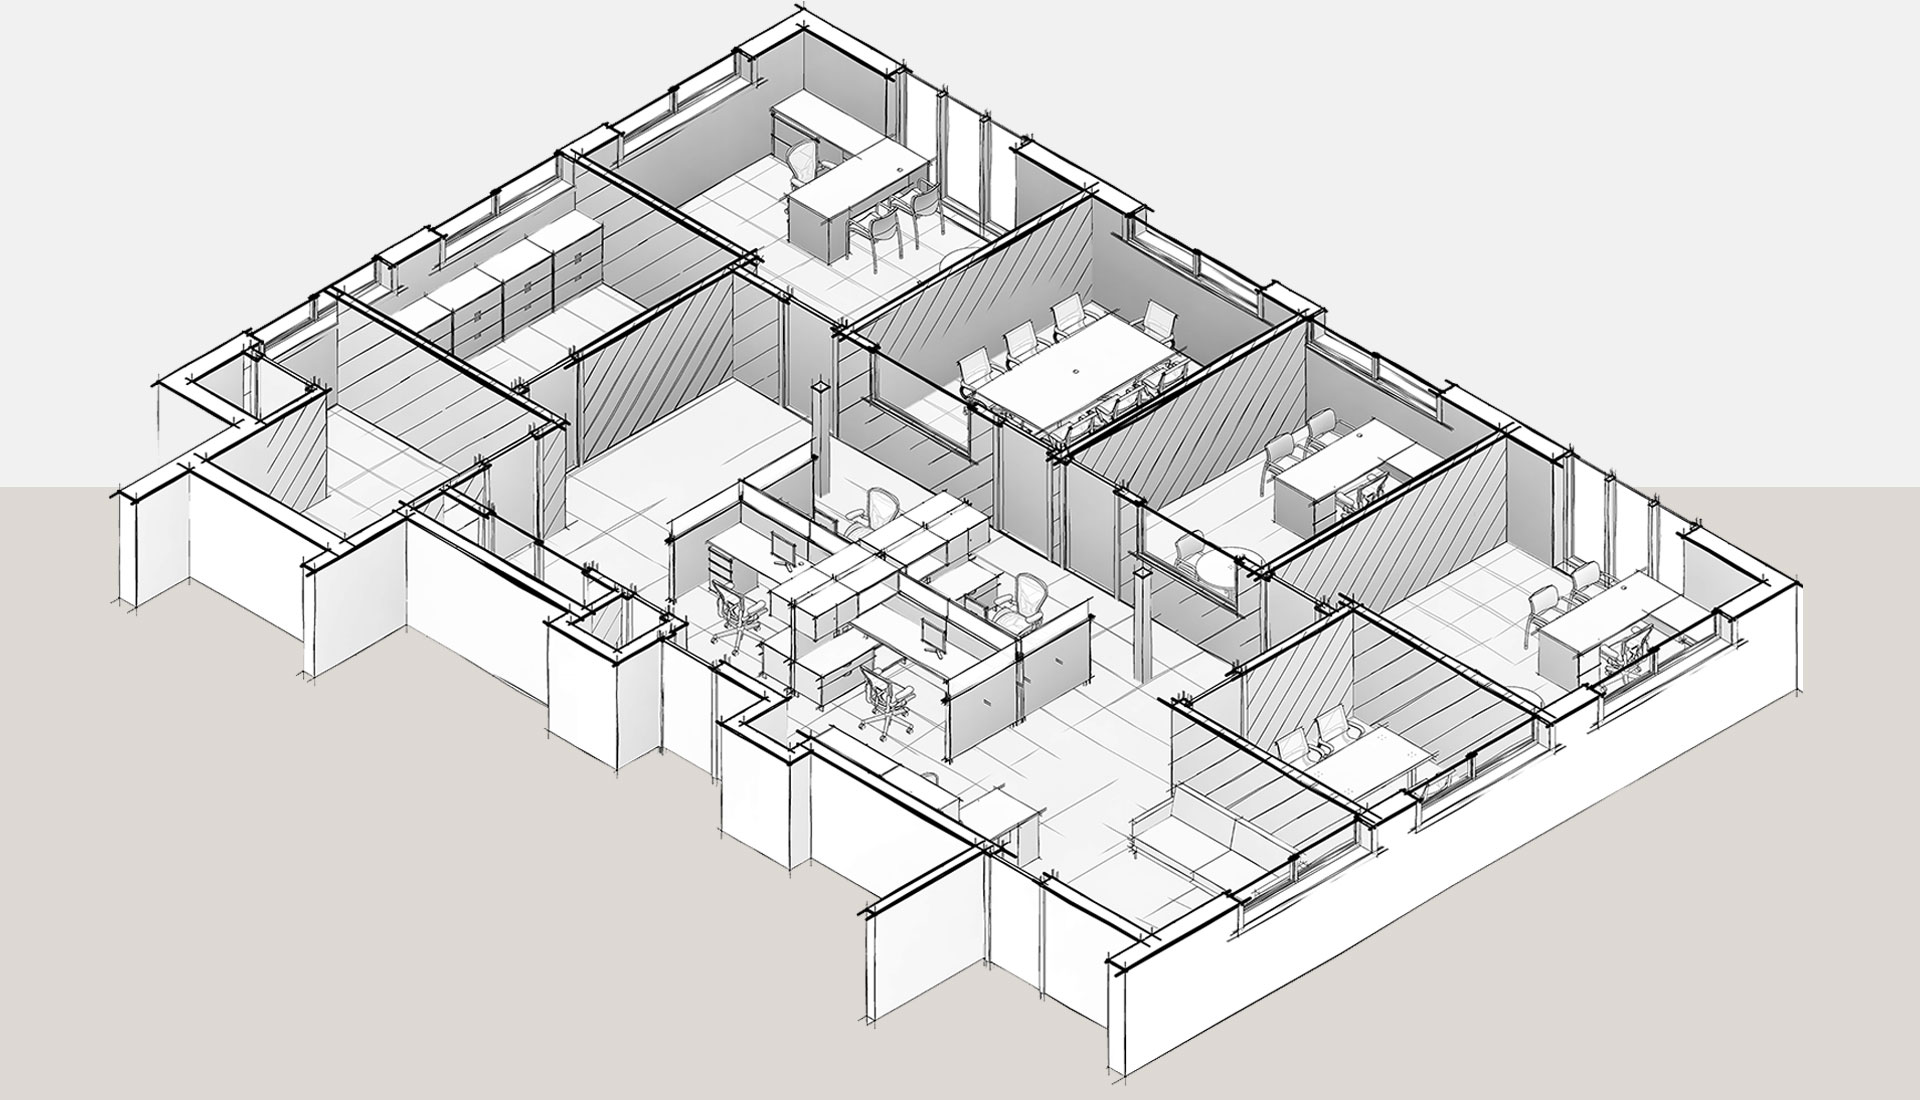 Sketched-View_Section-View_3D-Revit-Architectural-Model_Office-Space_BIM-Modeling-by-United-BIM